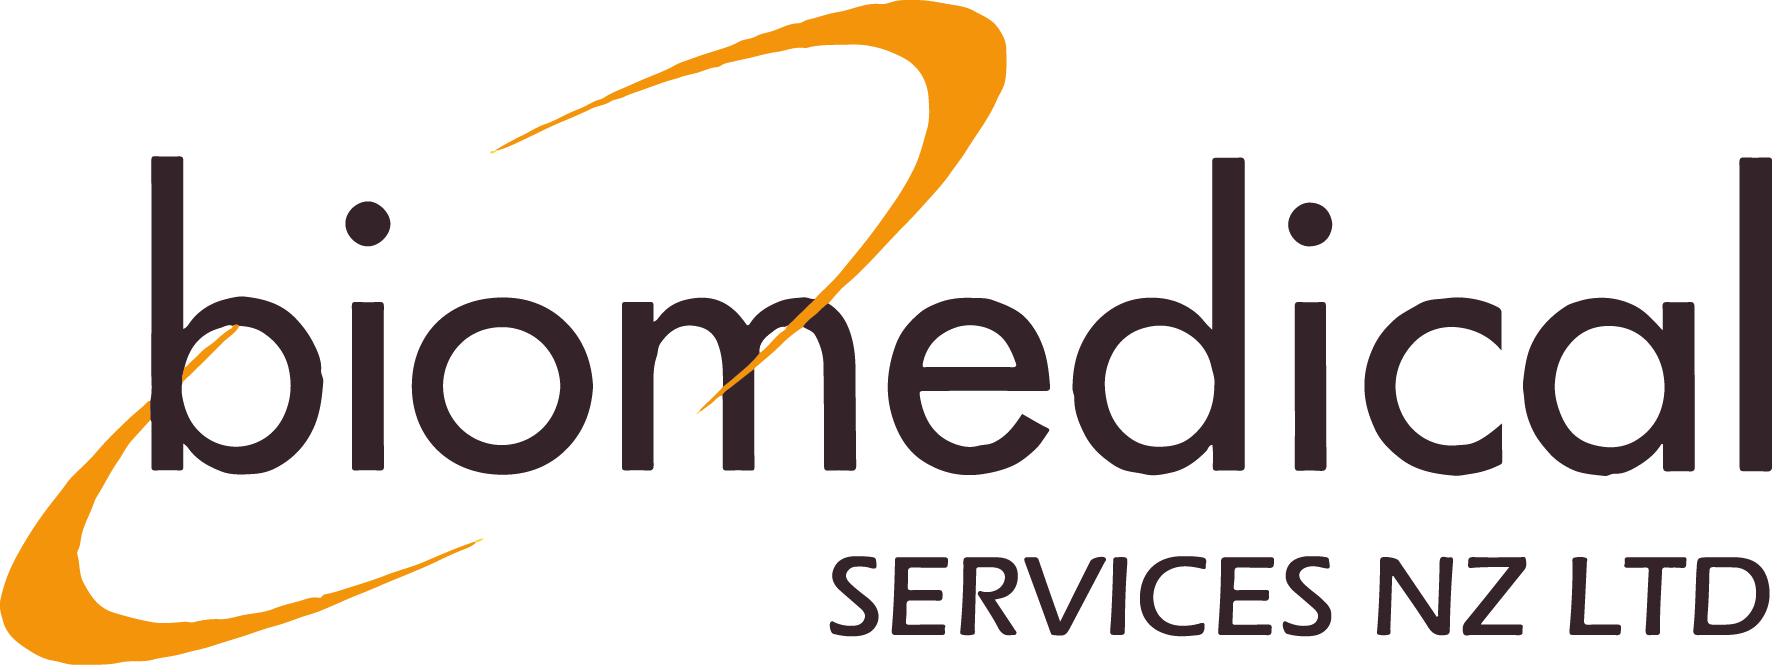 Biomedical Services NZ Ltd